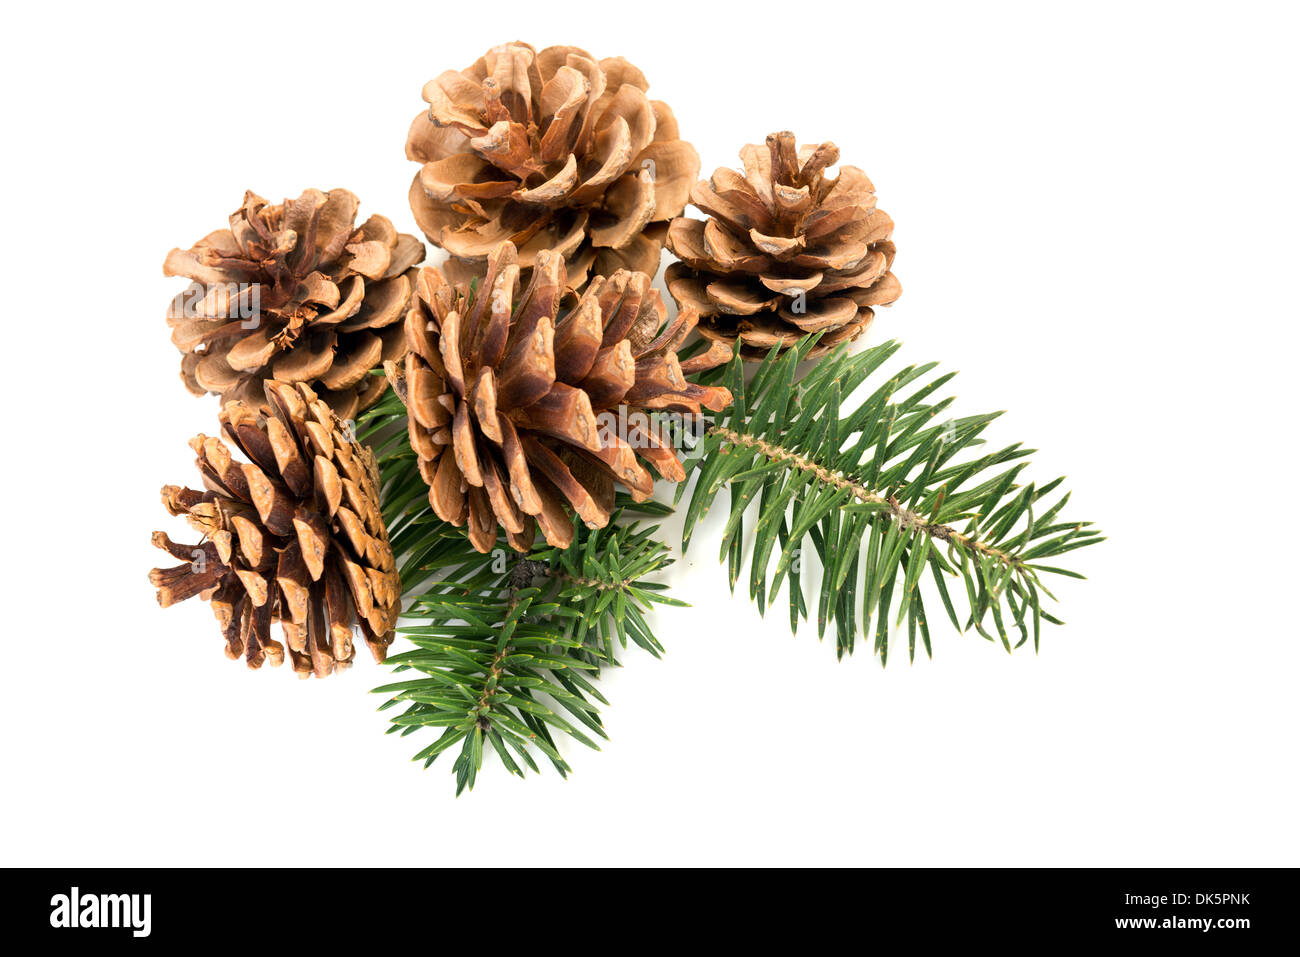 Pine cones with branch on a white background - Stock Image